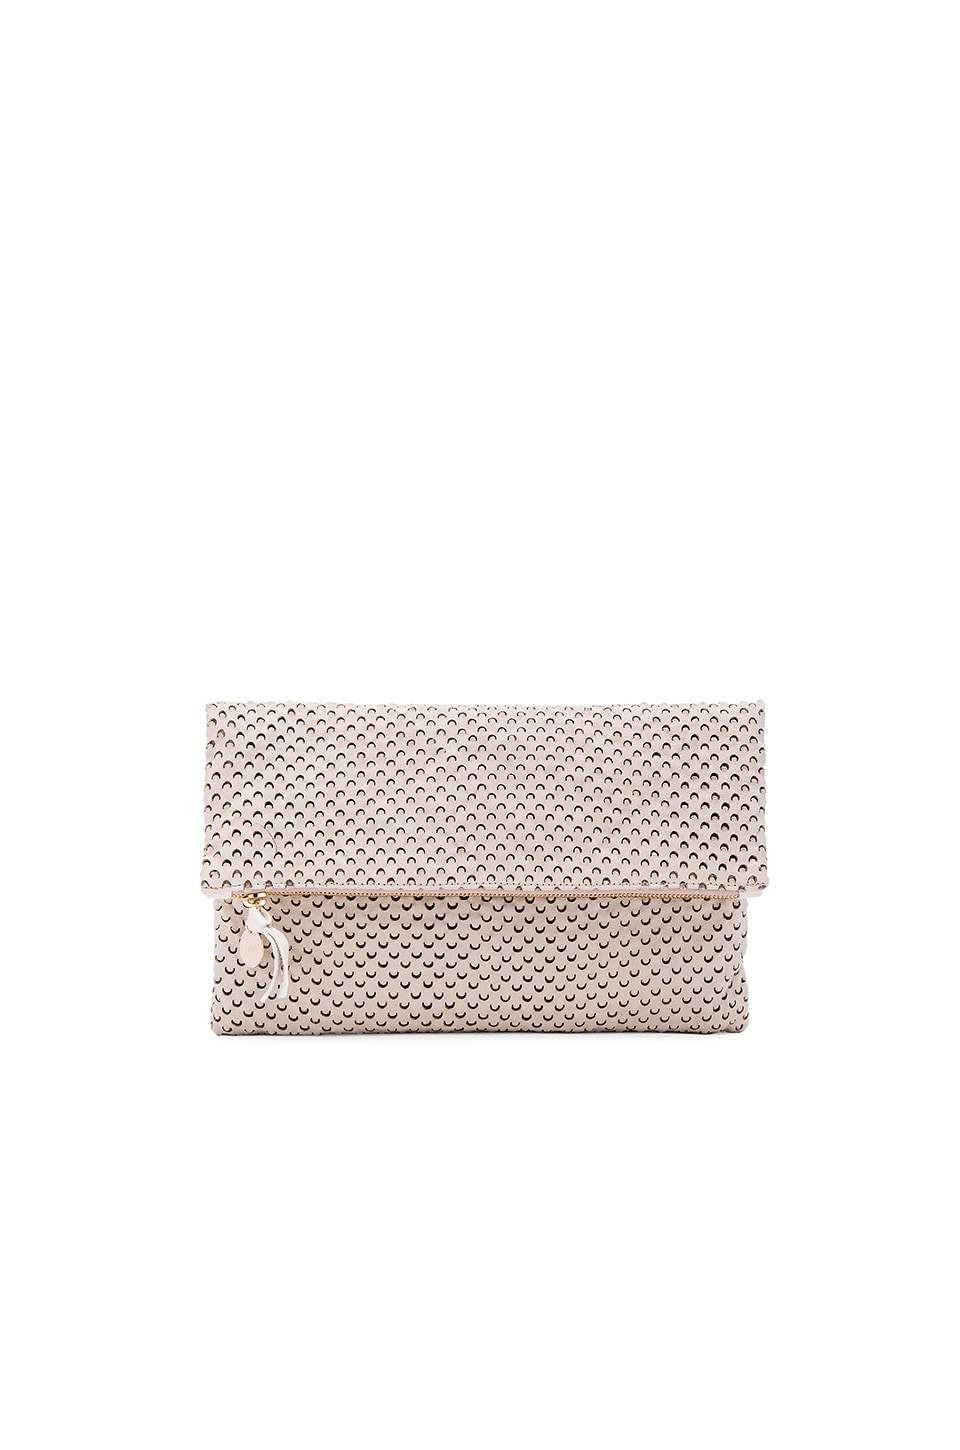 Clare V. Foldover Clutch in Cream Cut Out